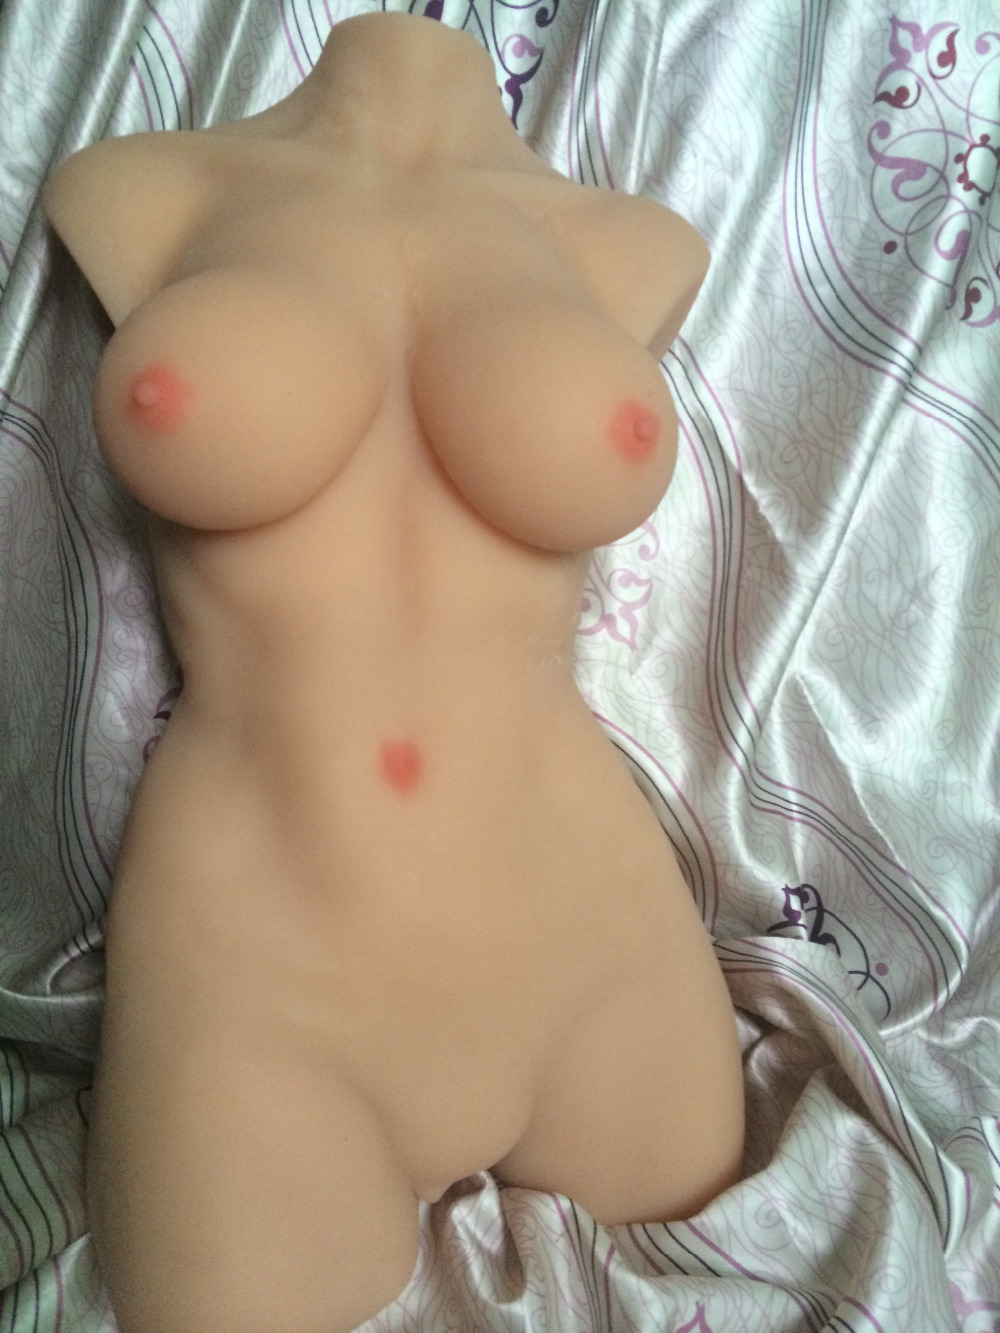 Life size porn pics free naked scenes